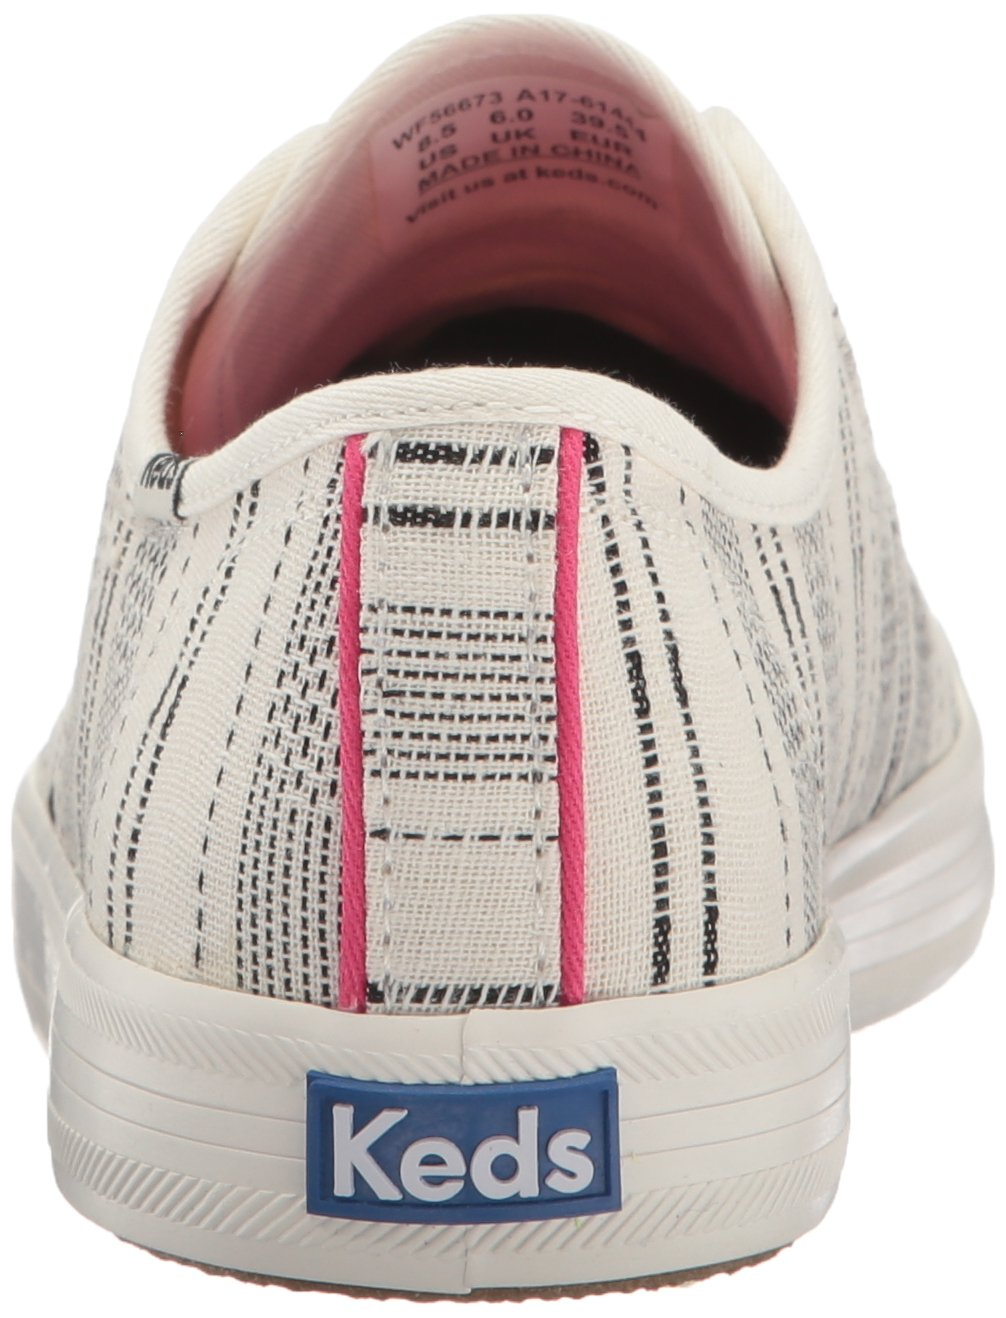 Keds Women's Kickstart Baja Stripe Fashion Sneaker B01J8J27KE 6 B(M) US|Cream